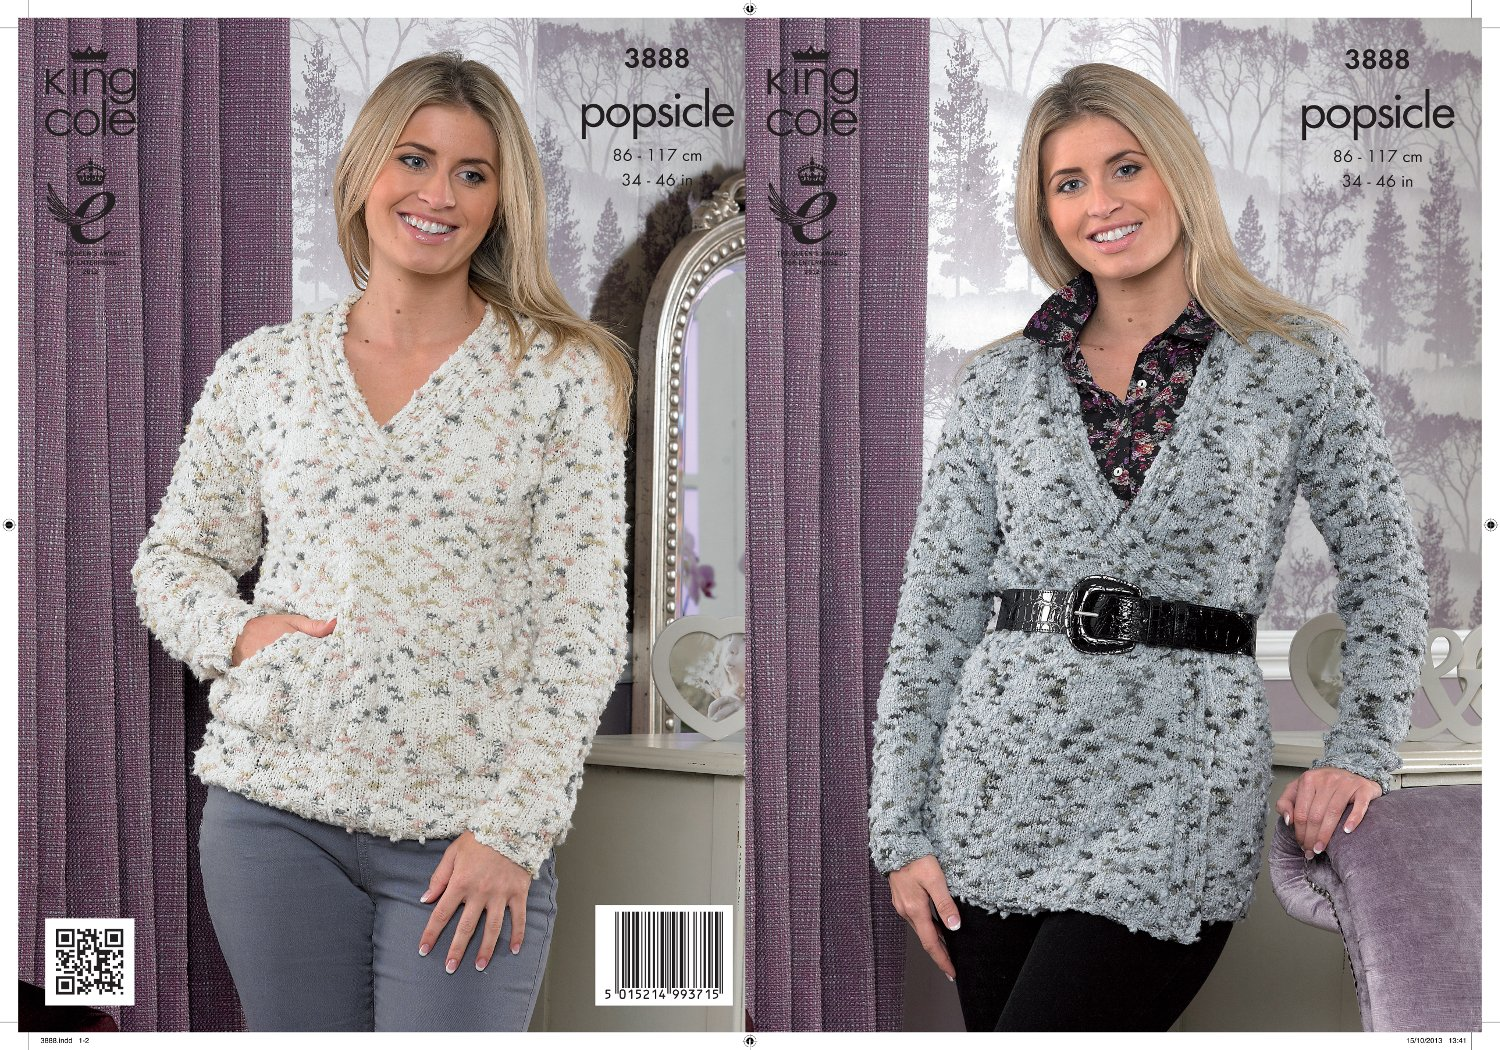 1116509fe King Cole Popsicle Knitting Pattern Ladies Soft Textured Wrap Around  Cardigan   Sweater 3888  Amazon.co.uk  Kitchen   Home